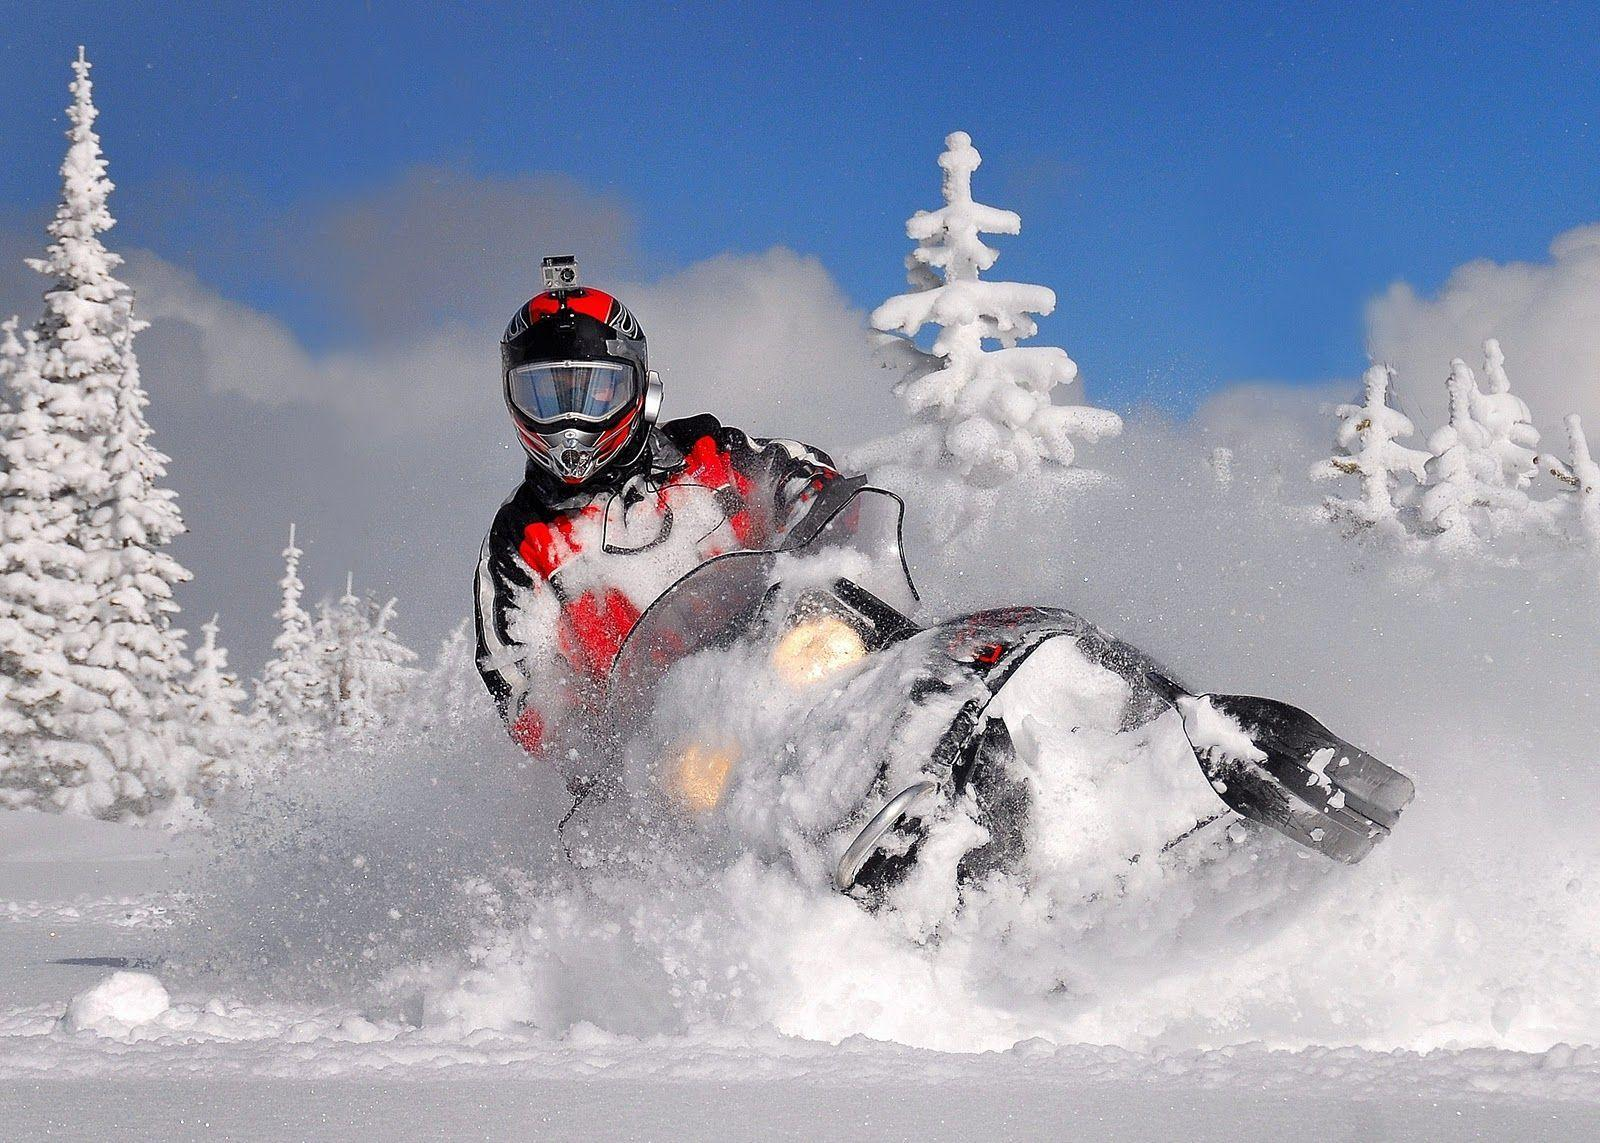 Snowmobile Wallpapers - Wallpaper Cave